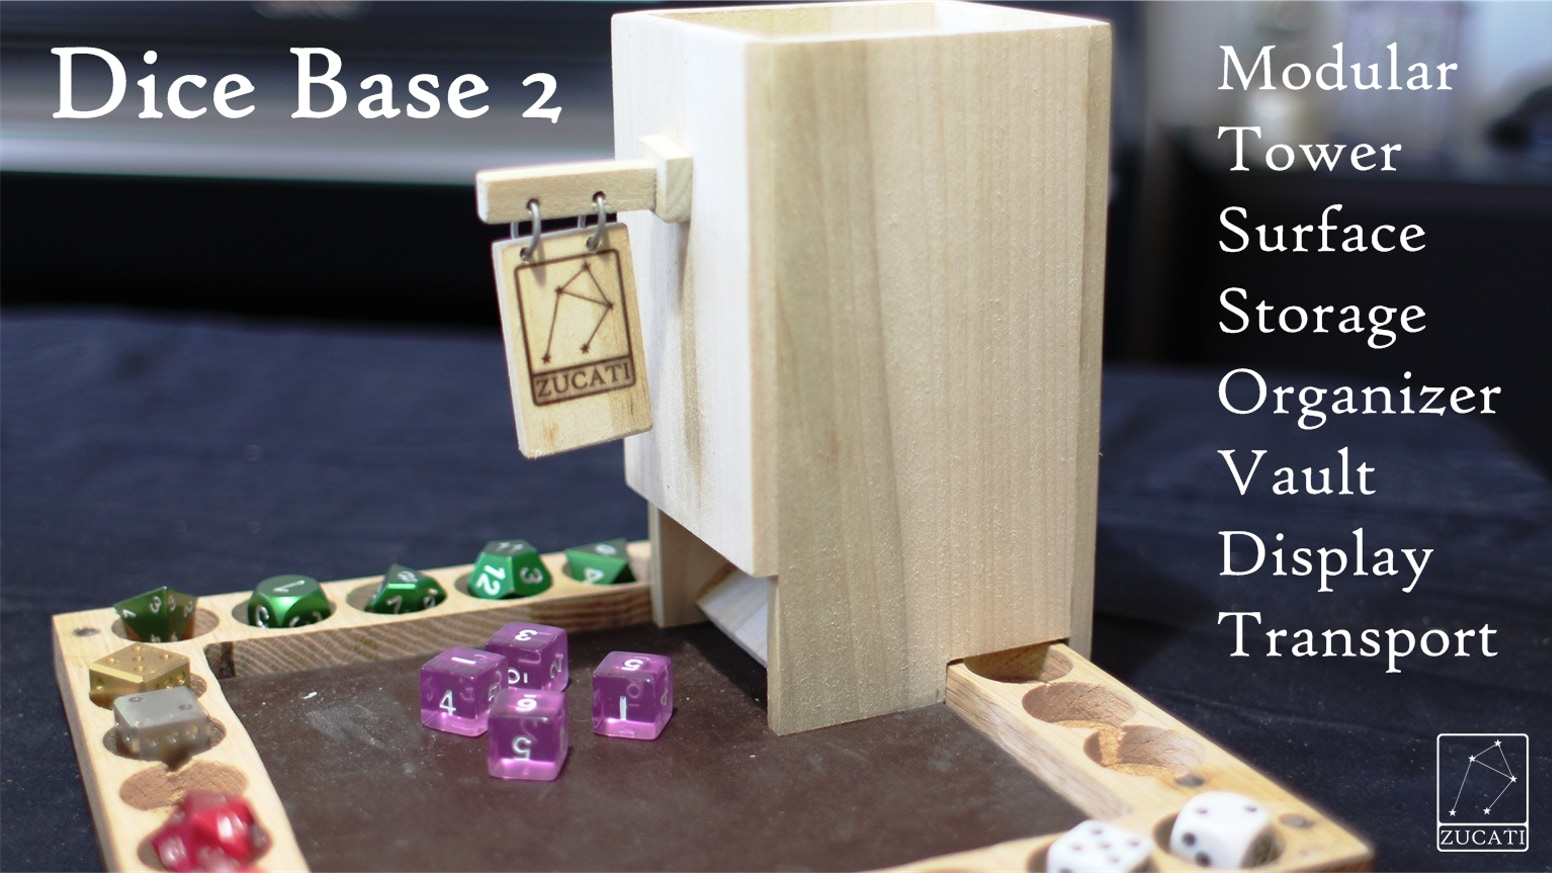 Protect, store, organize and display 225 of your favorite dice in this modular and easy to use dice vault system. Oak and leather.